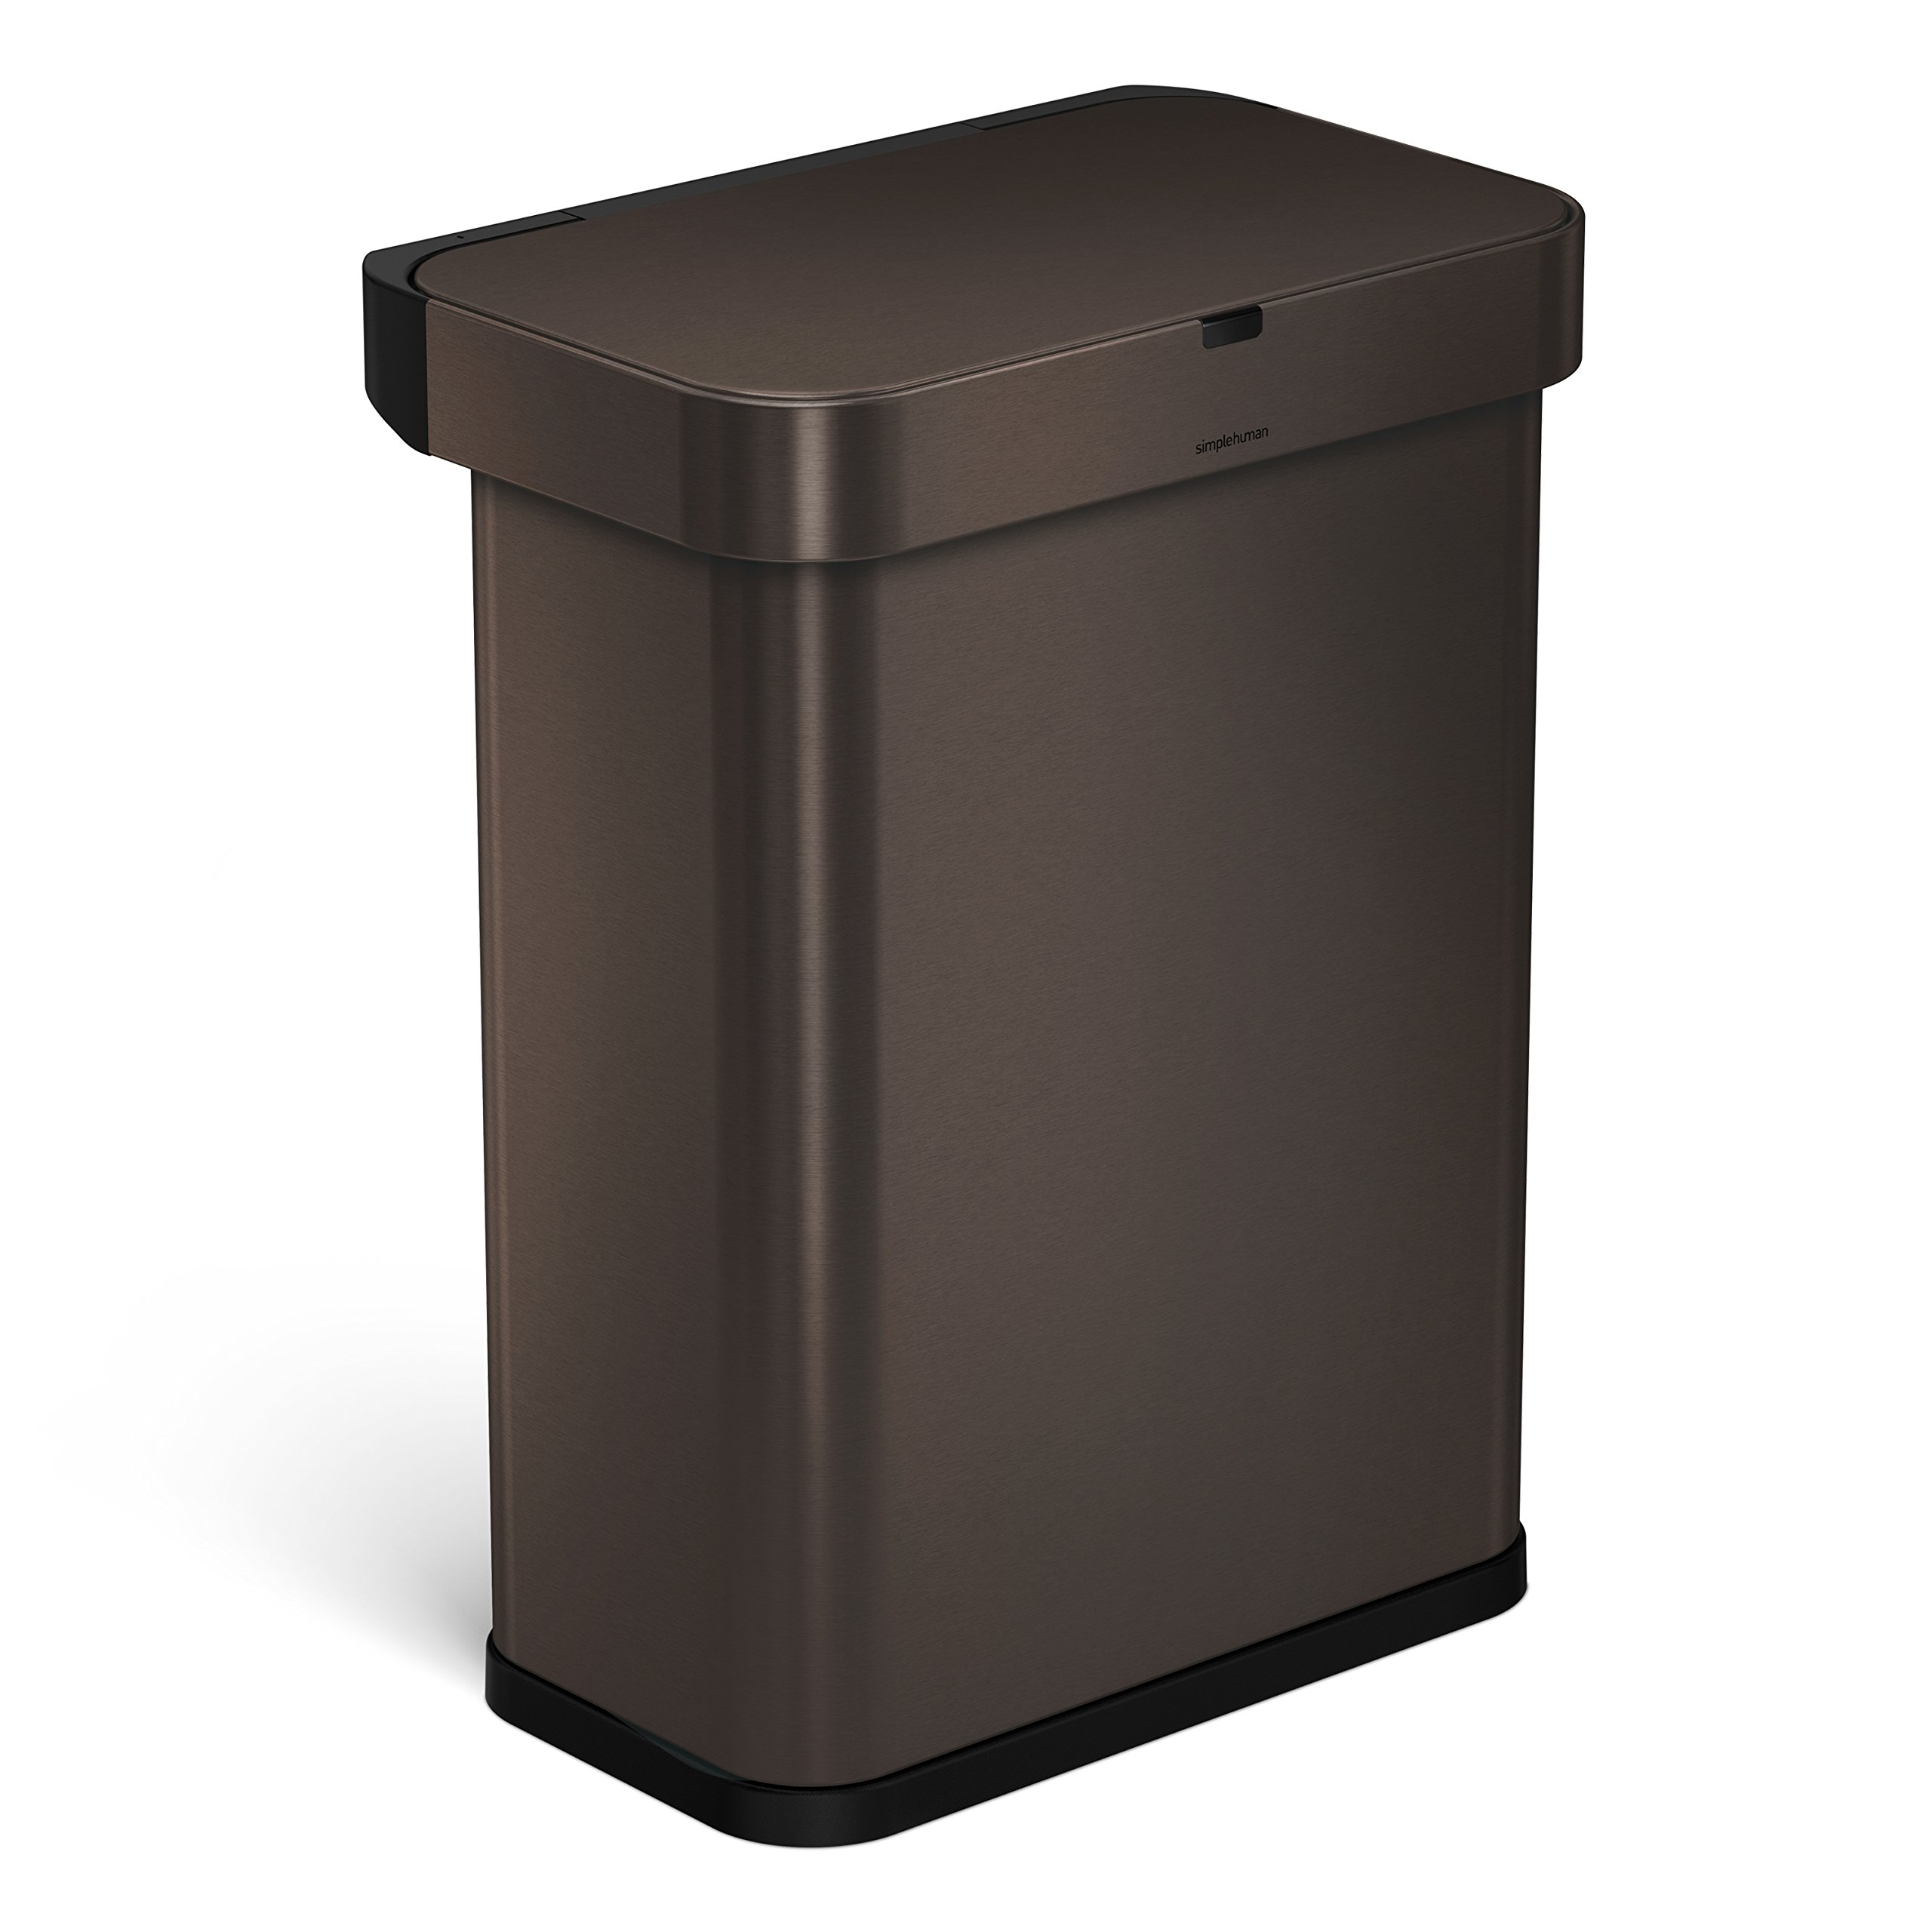 simplehuman 58 Liter / 15.3 Gallon 58L Stainless Steel Touch-Free Rectangular Kitchen Sensor Trash Can with Voice and Motion Sensor, Voice Activated, Dark Bronze Stainless Steel